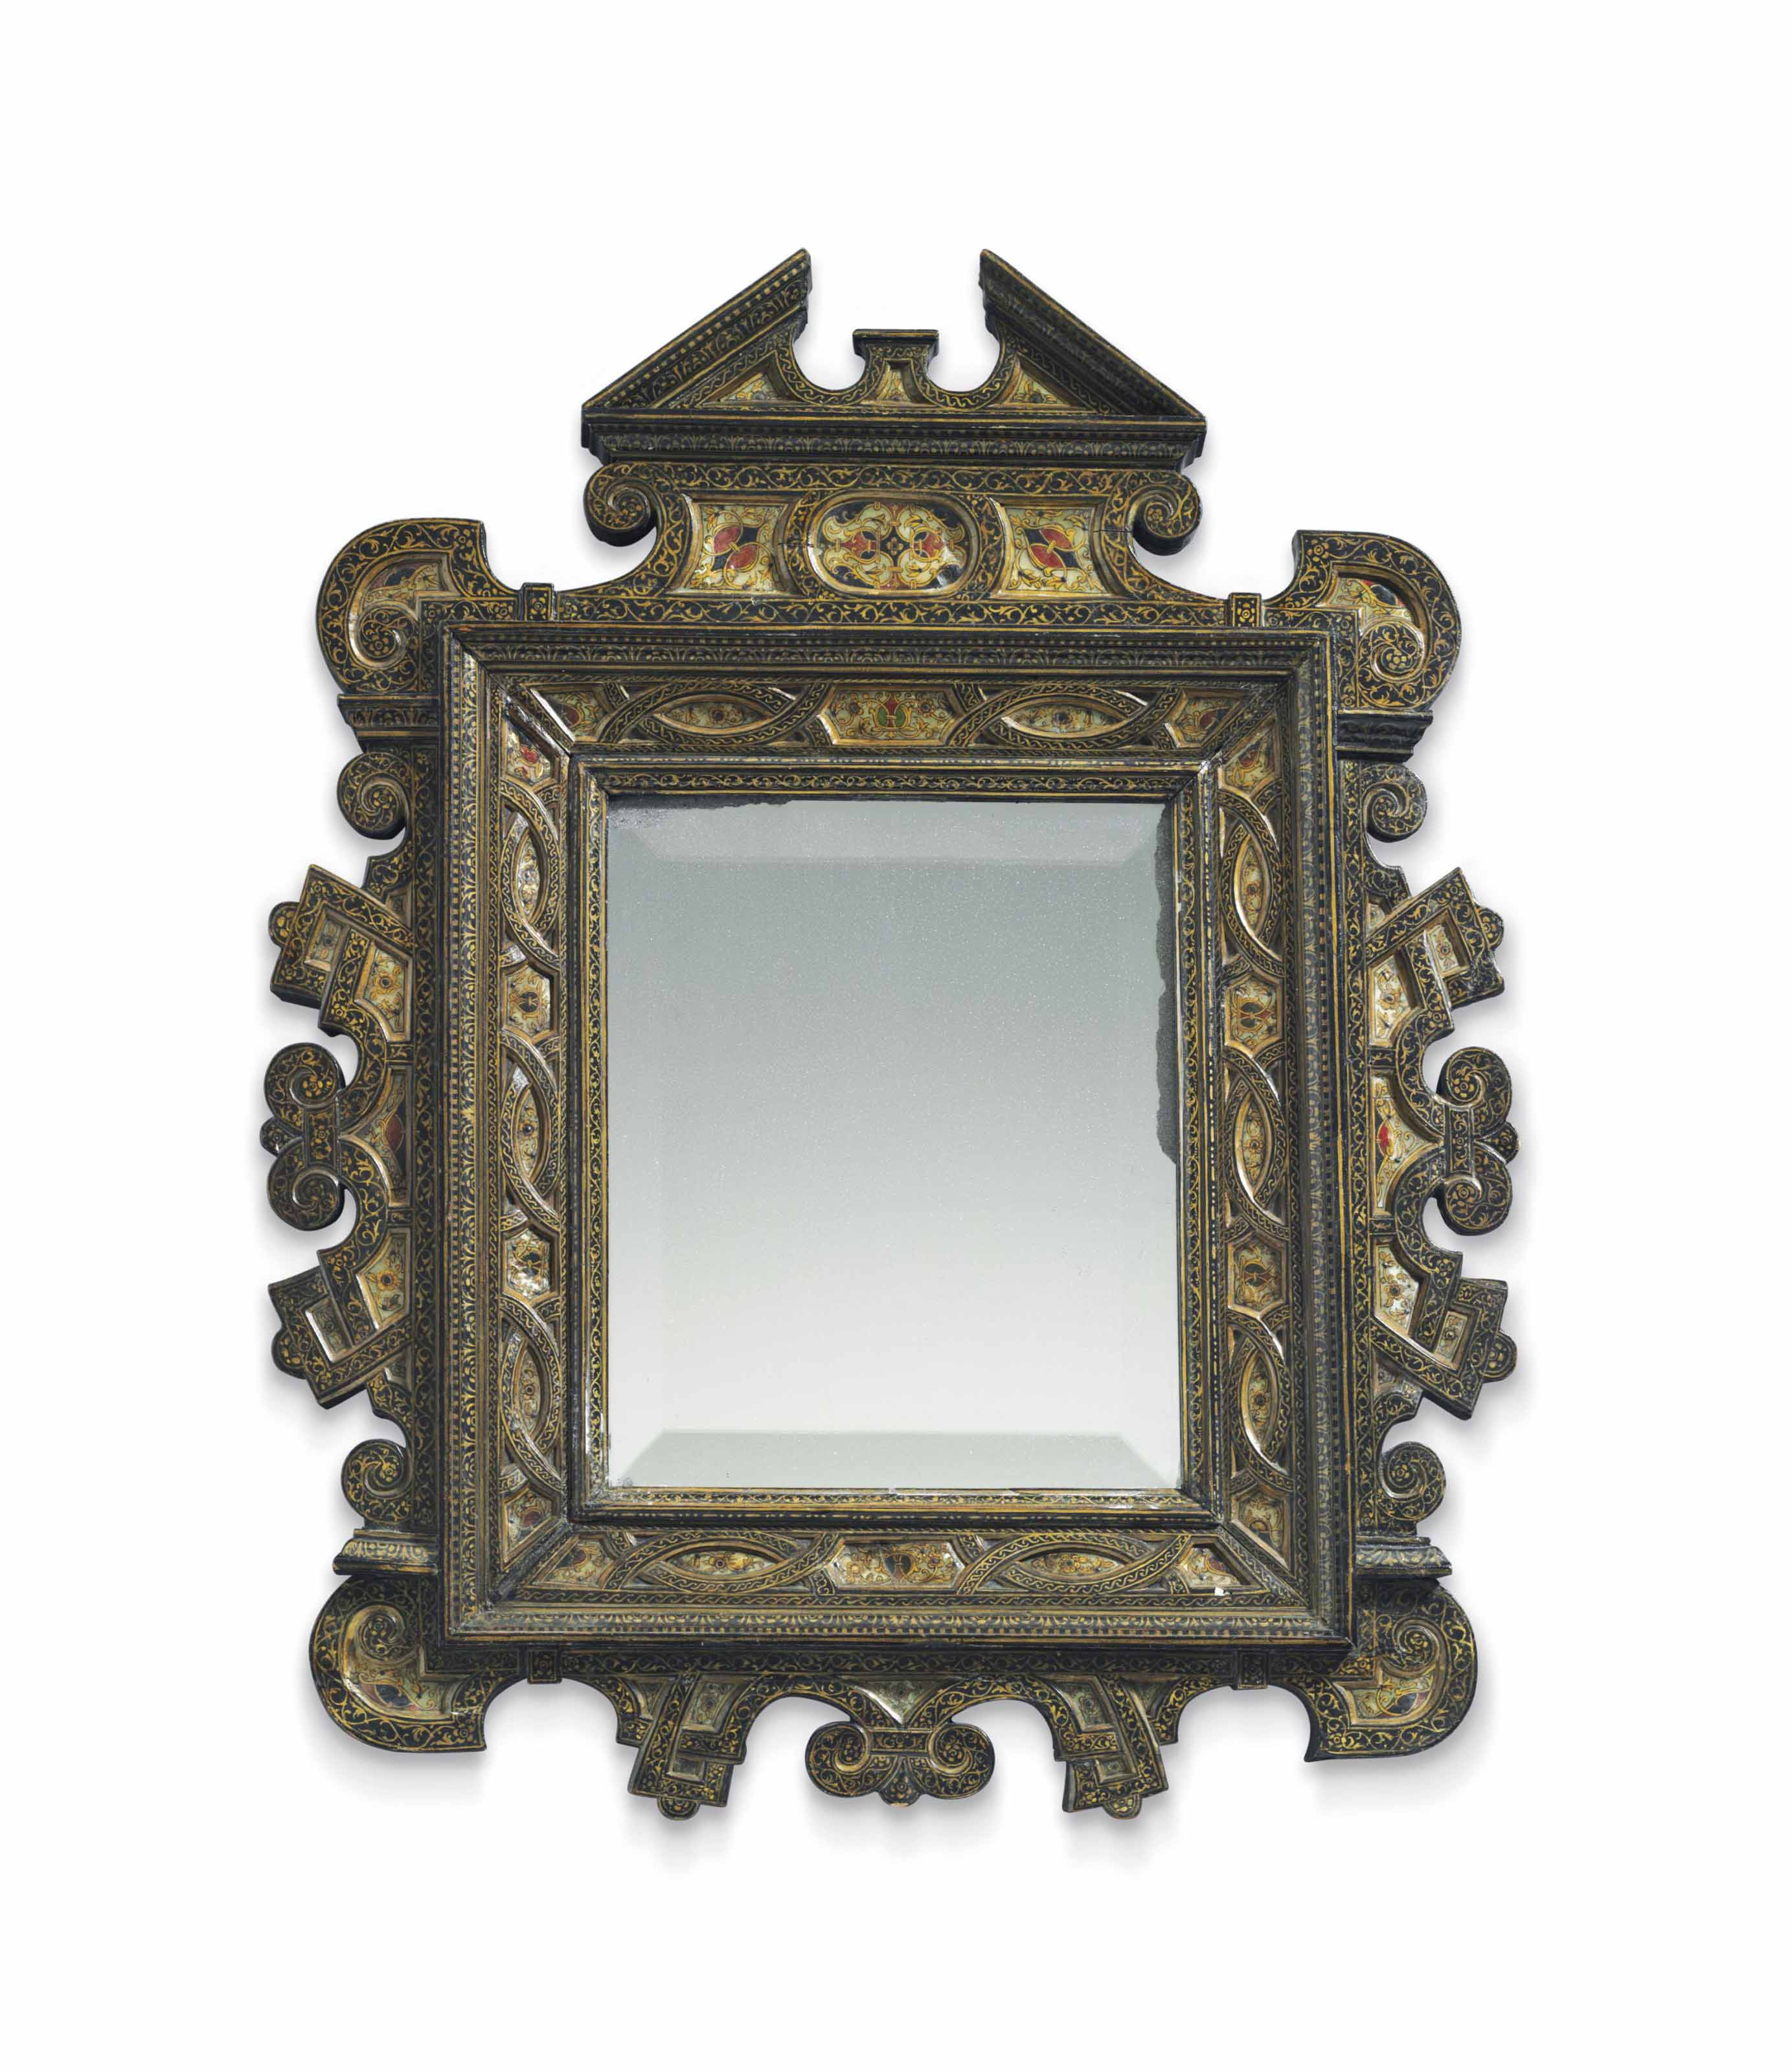 A NORTH ITALIAN MOTHER-OF-PEARL INLAID EBONIZED AND PARCEL-GILT MIRROR